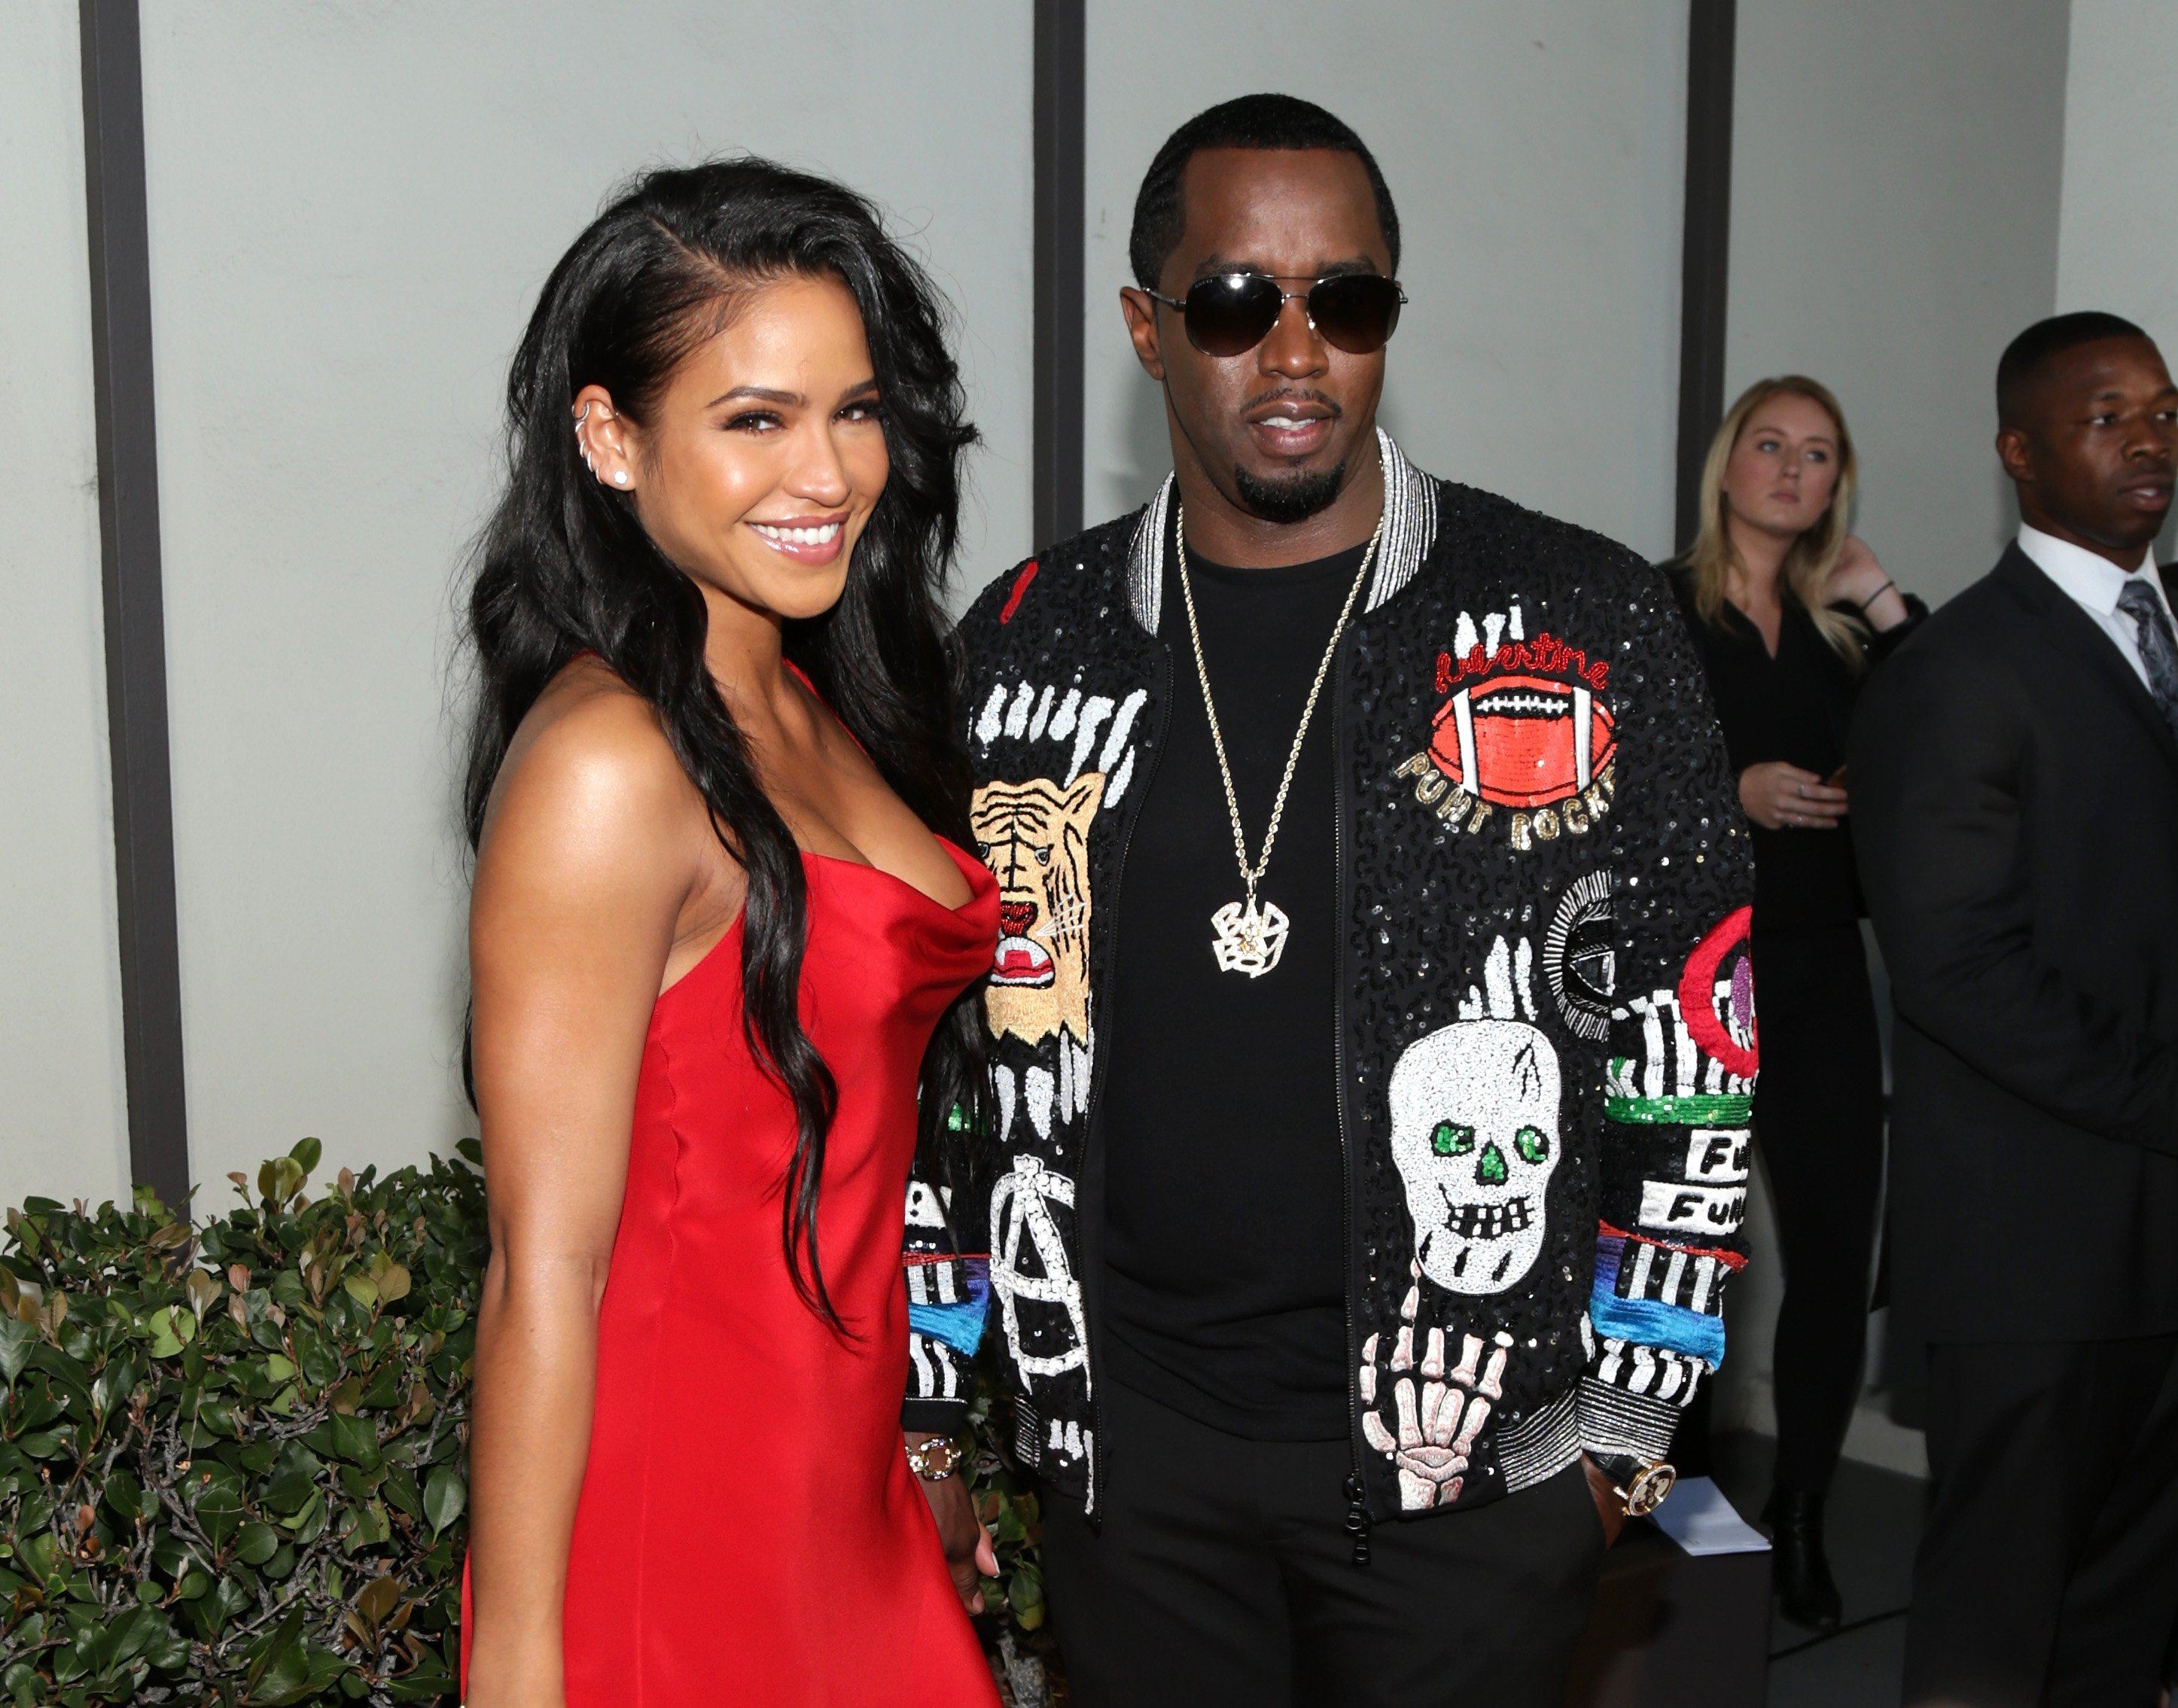 """Cassie and Sean """"P. Diddy"""" Combs at the premiere of """"Can't Stop Won't Stop"""" on June 21, 2017 in Los Angeles, California. 